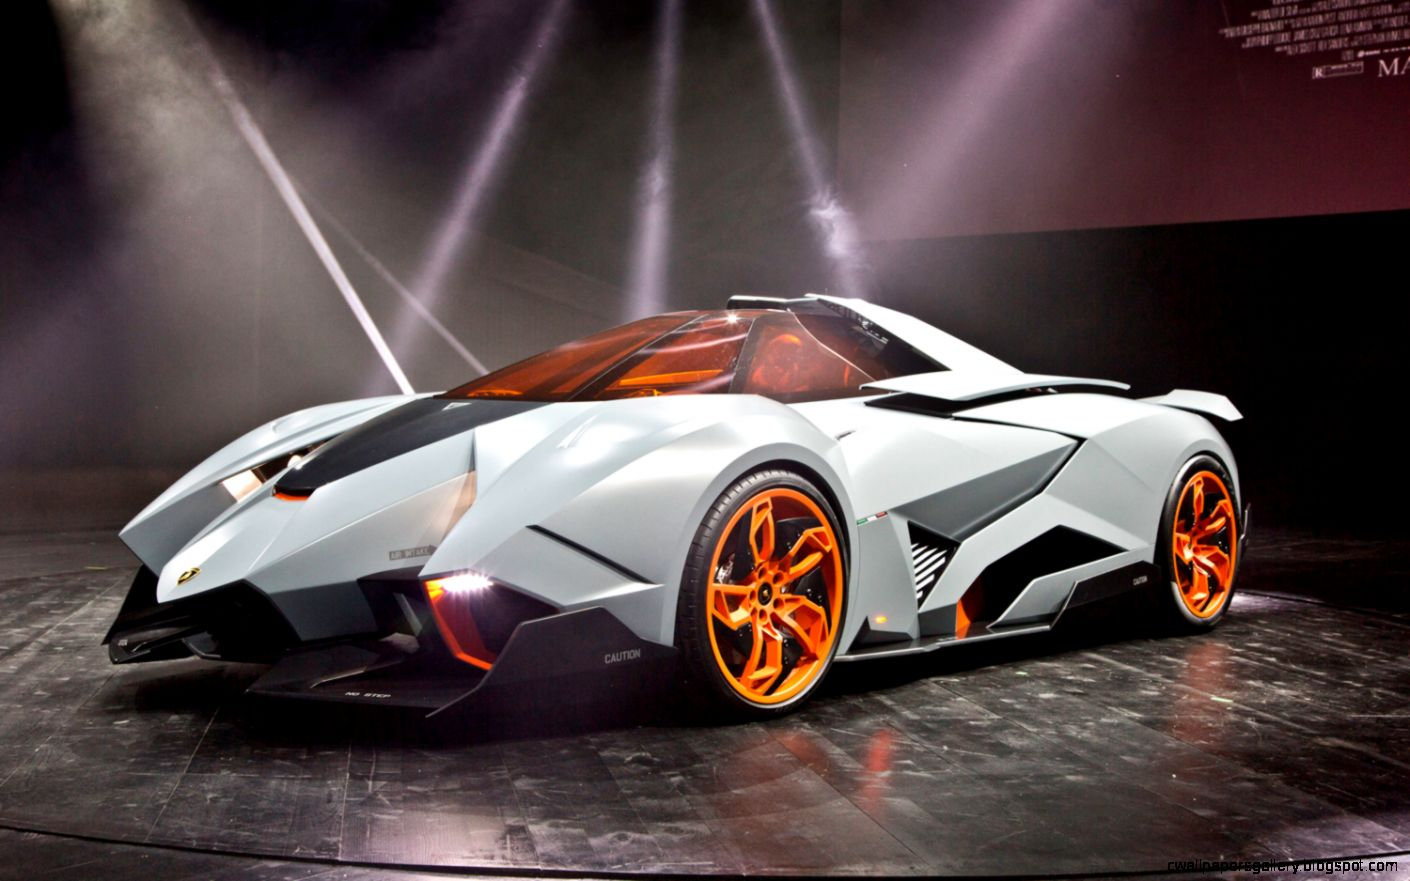 Incroyable View Original Size. 2013 Lamborghini Egoista Car ...